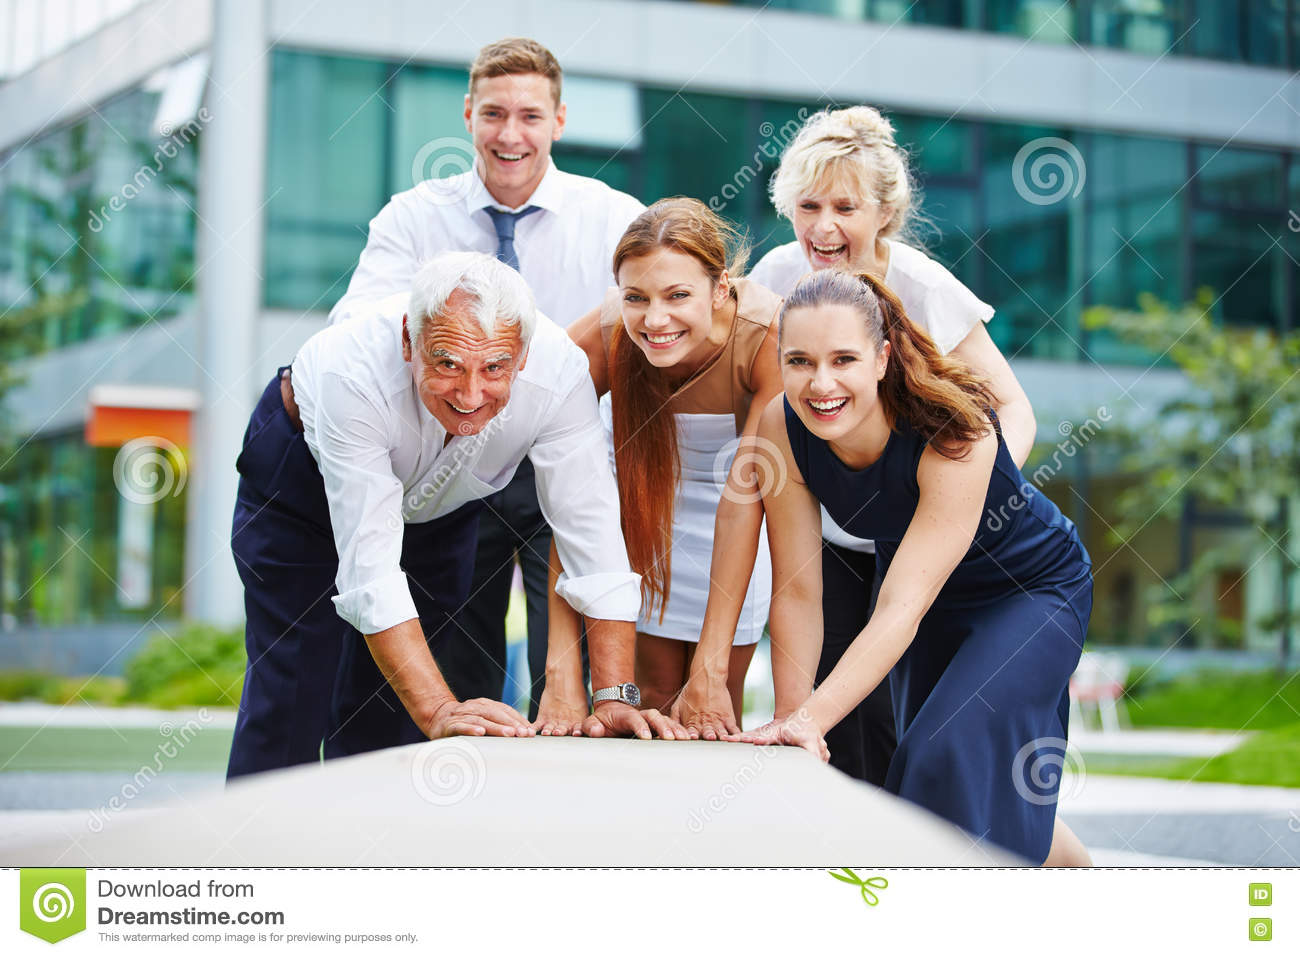 Motivated business team working together